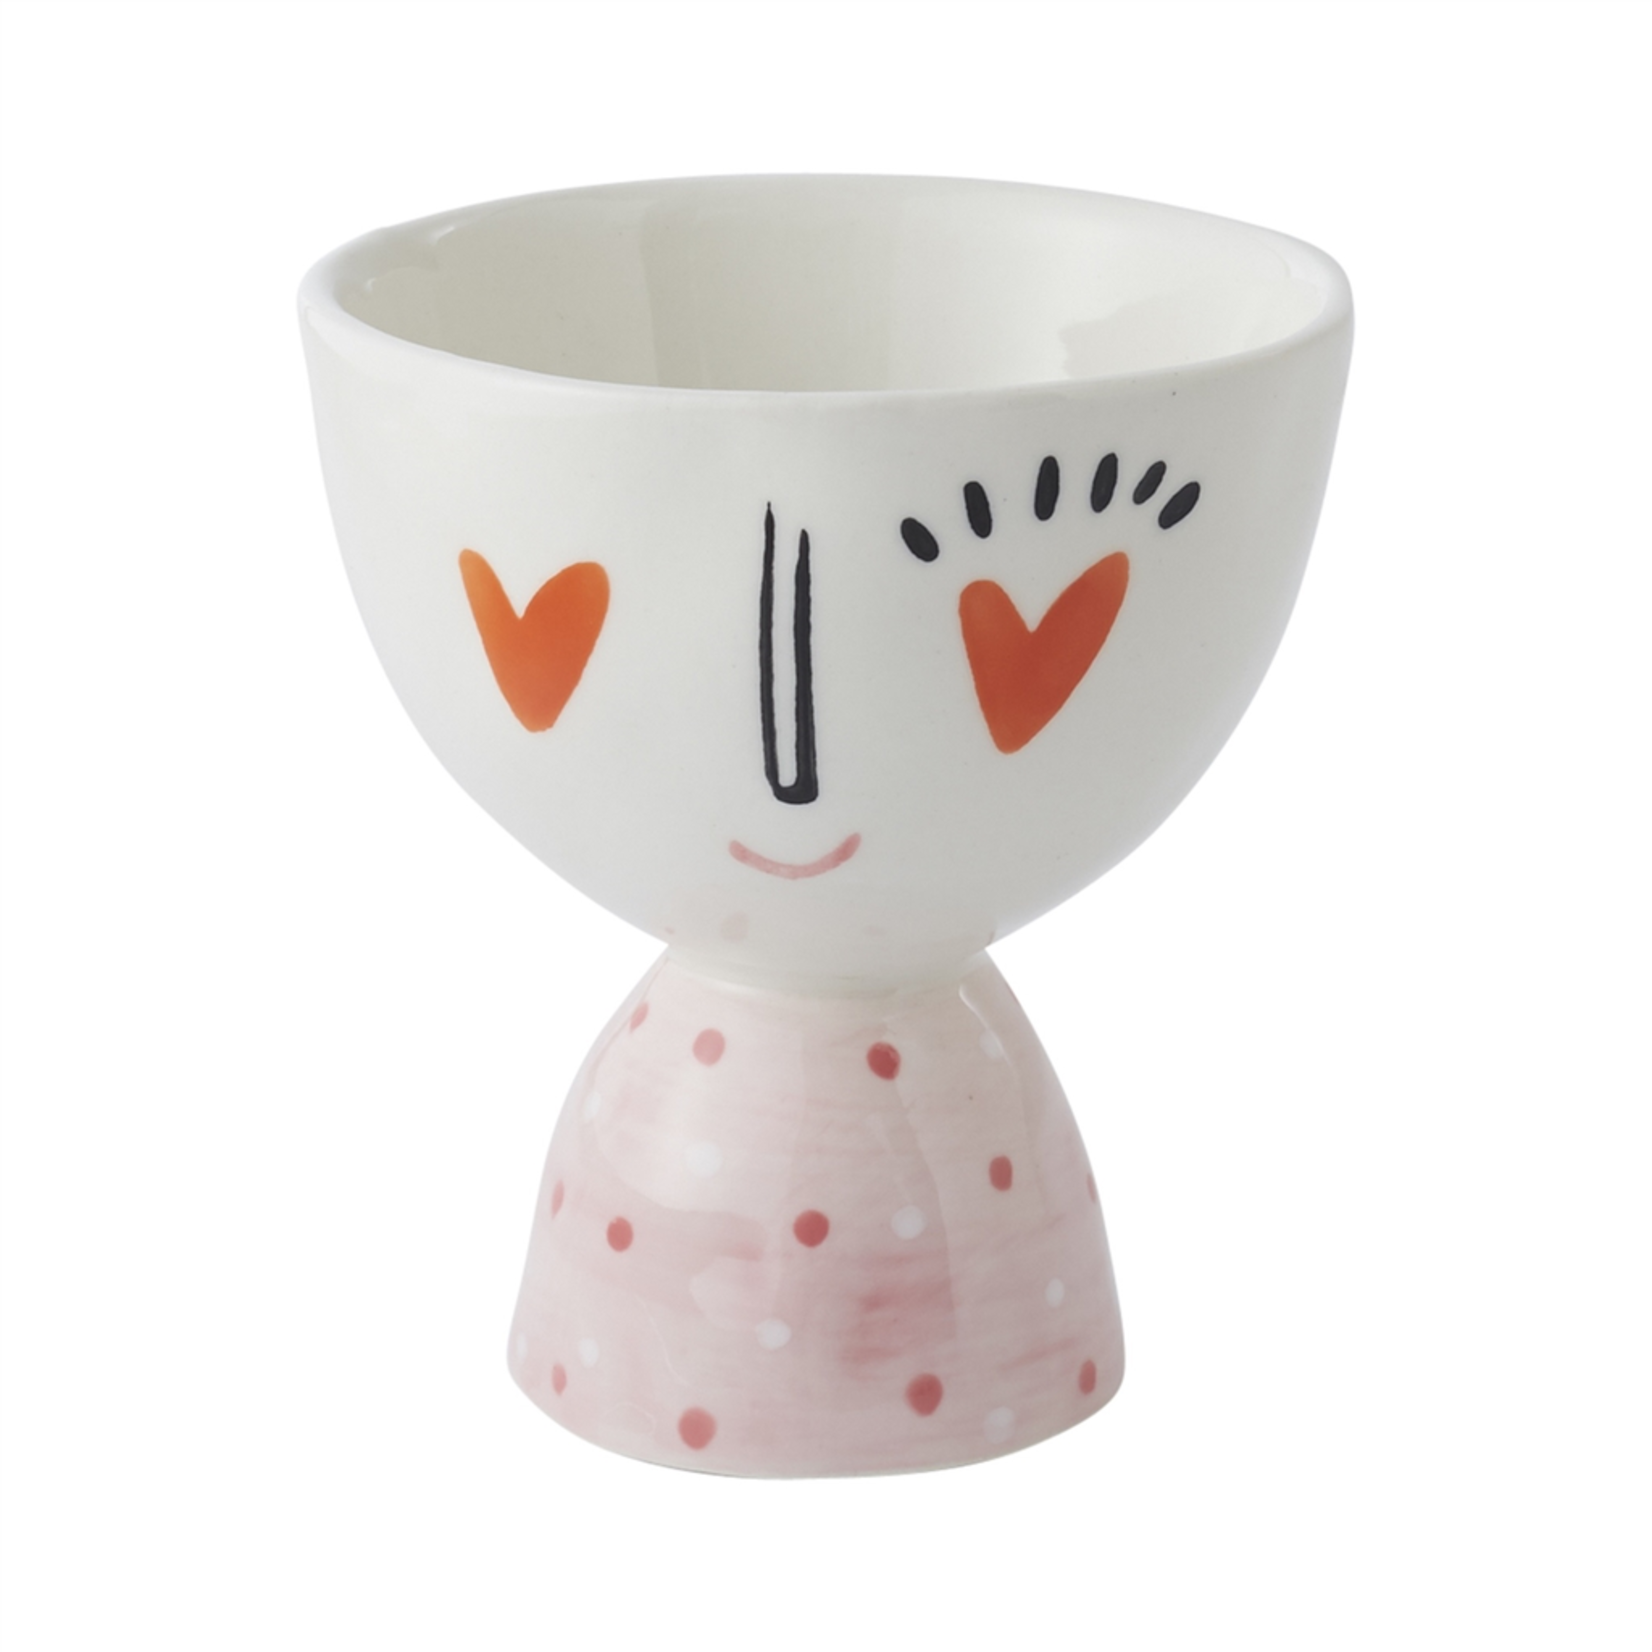 """3.5""""x 3.75""""H FOOTED BOWL HEART EYES (AD)"""